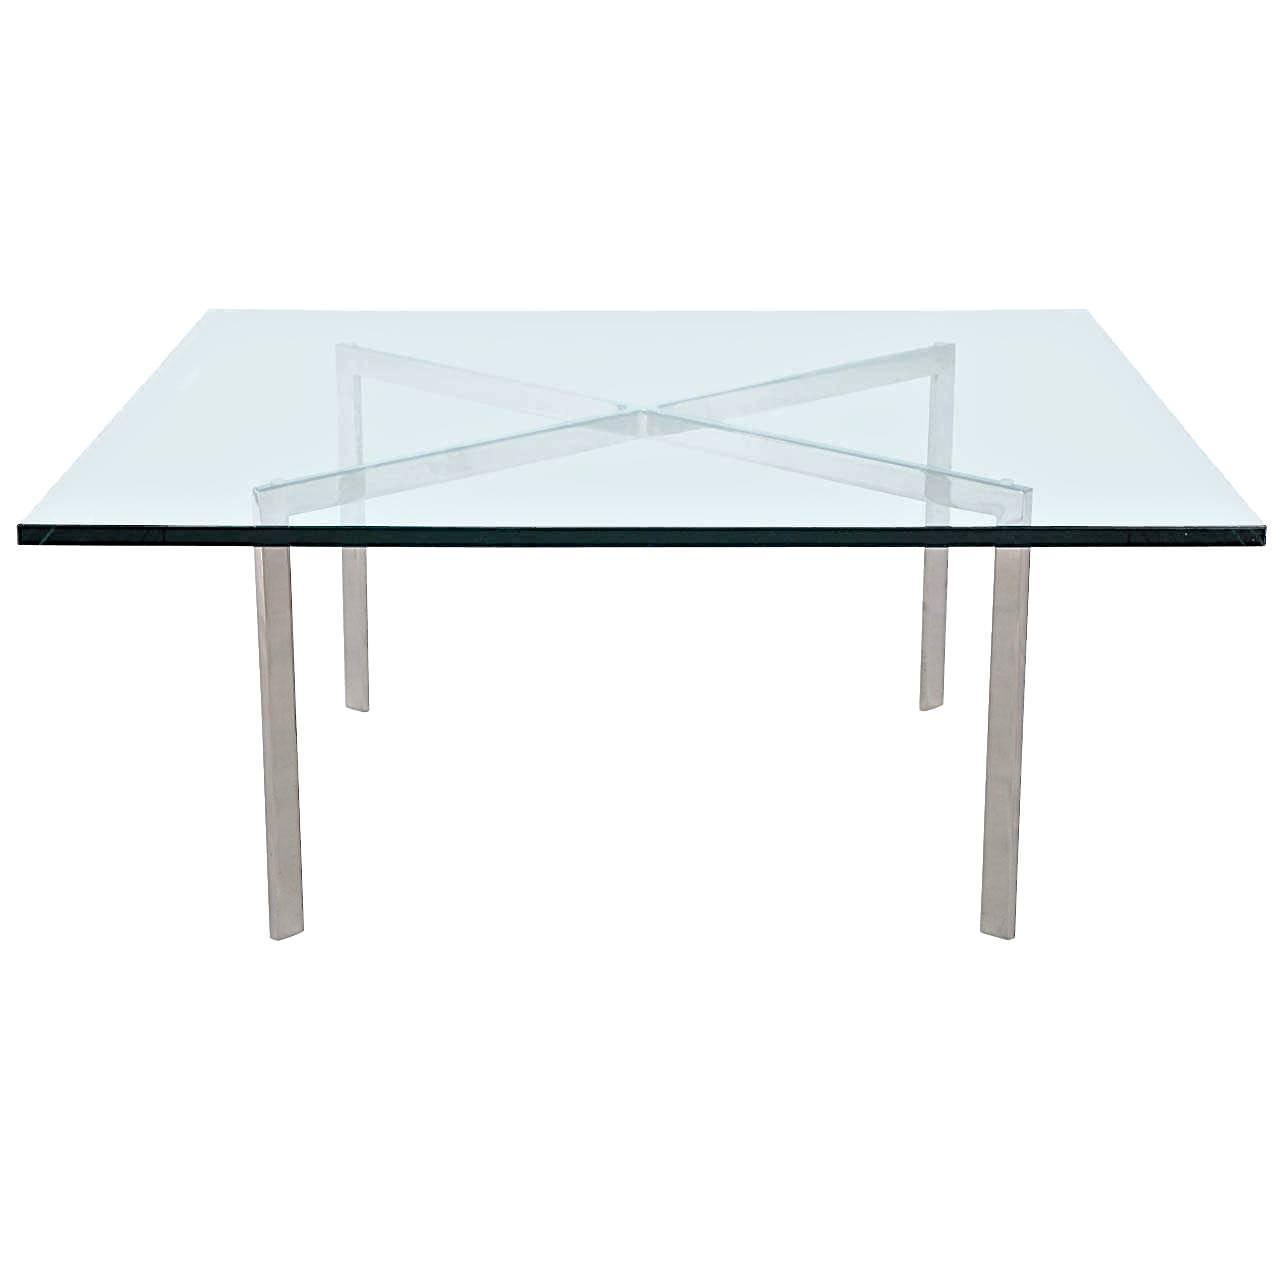 mies van der rohe barcelona table polished stainless kp